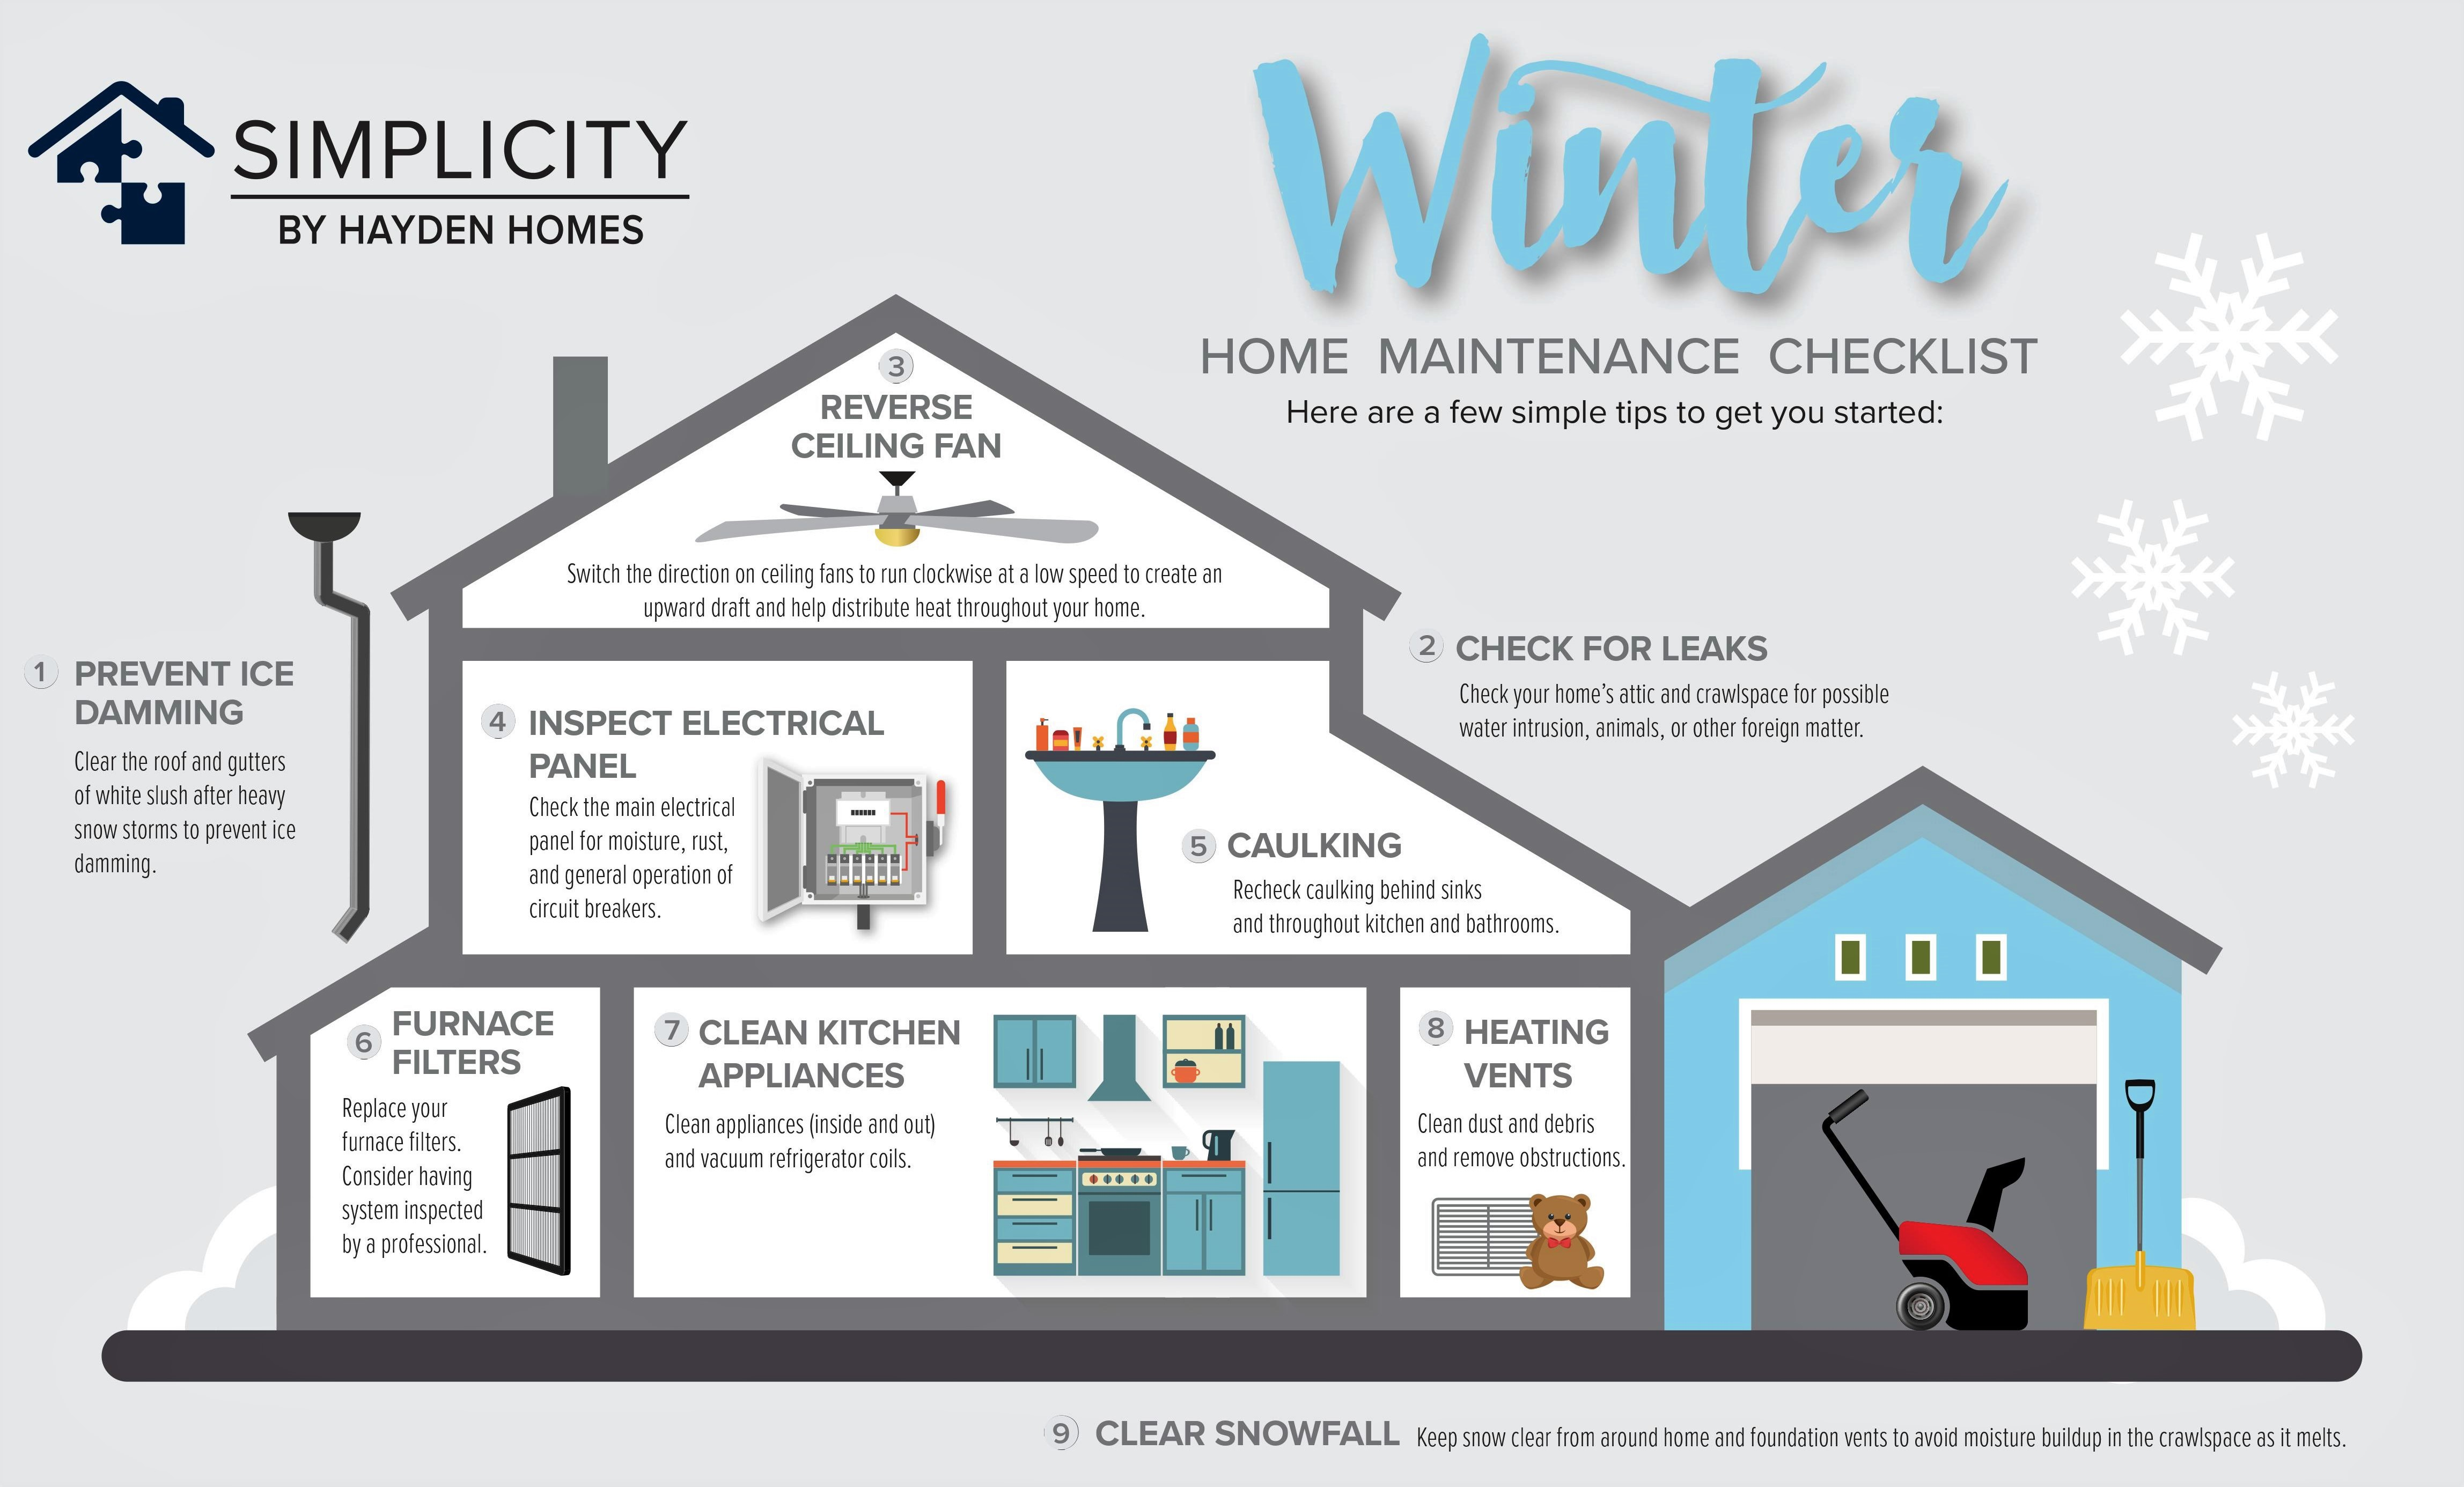 Your Home Maintenance Checklist for Winter